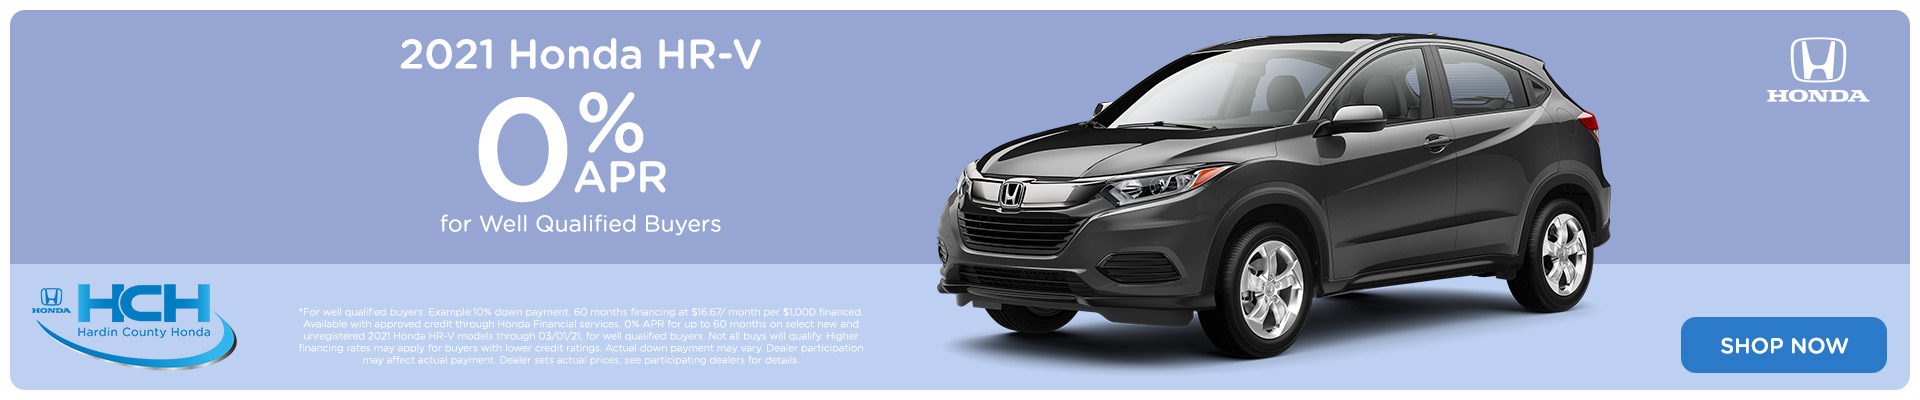 0% APR - 2021 Honda HR-V